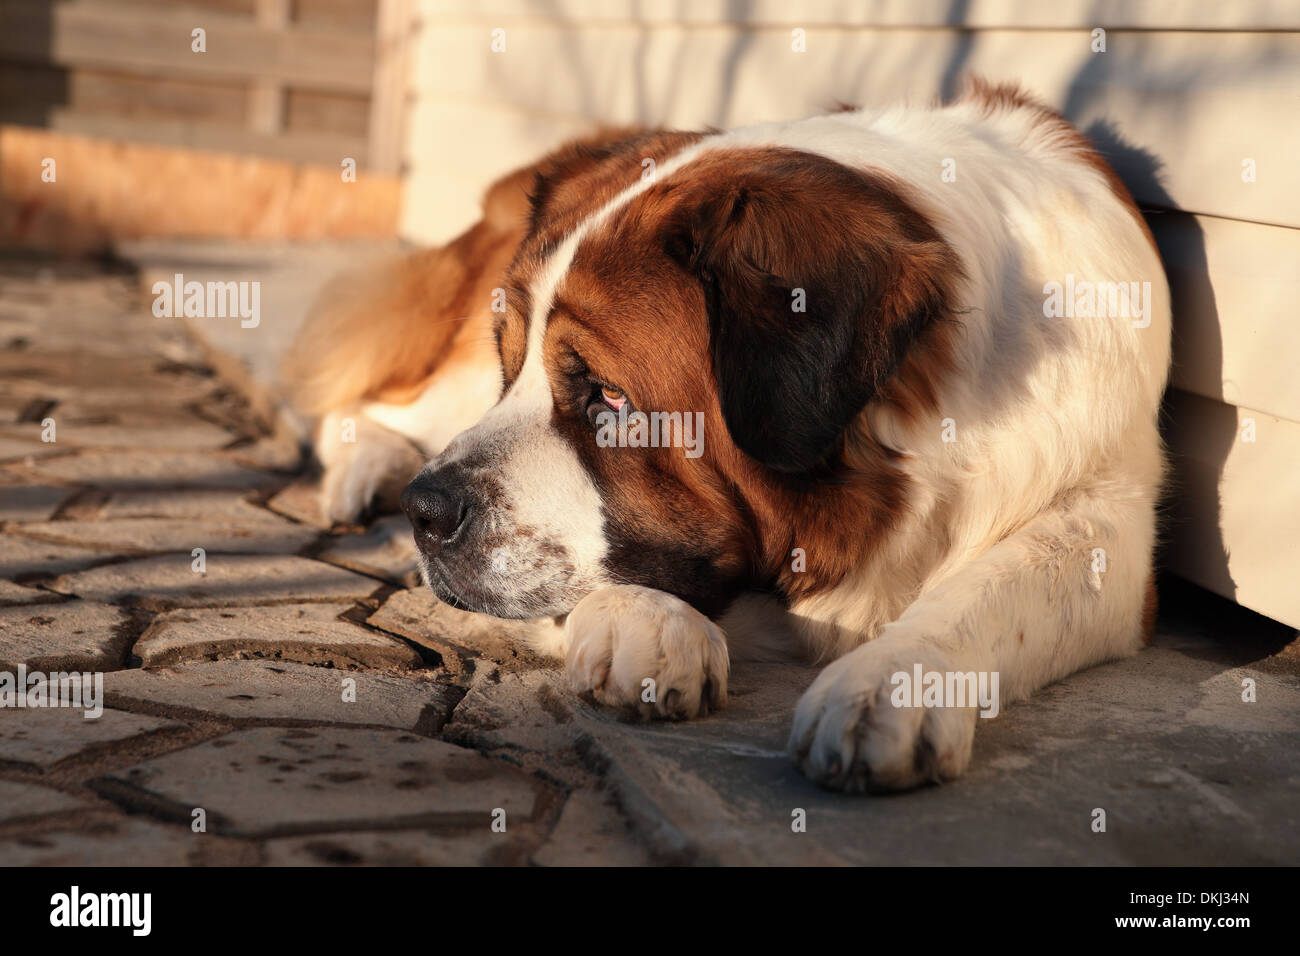 A large dog protects its territory - Stock Image